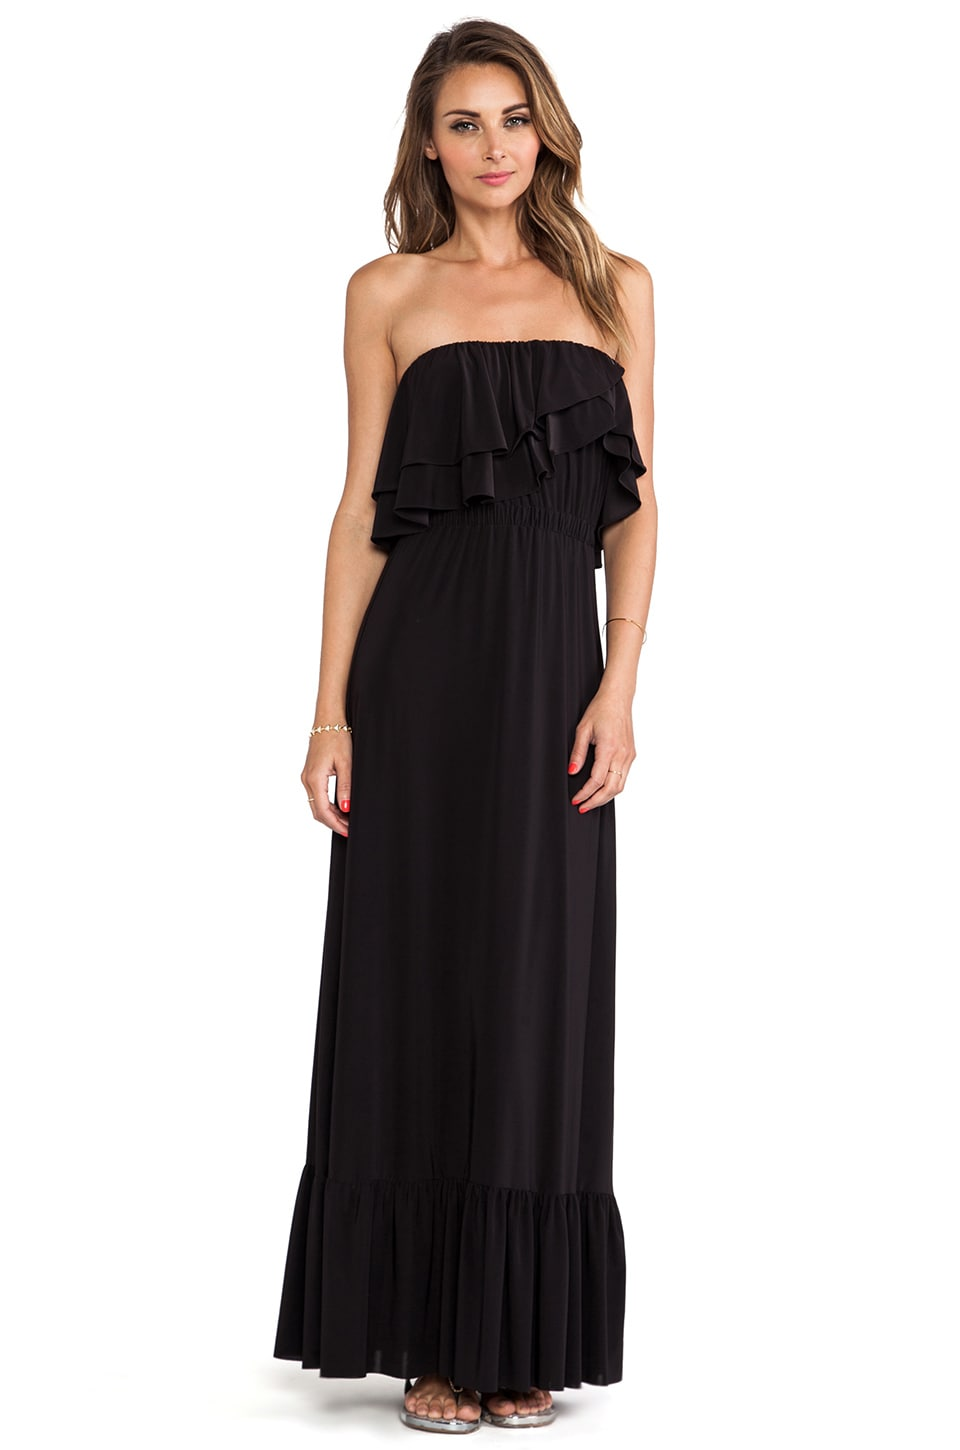 T-Bags LosAngeles Strapless Ruffle Top Dress in Black